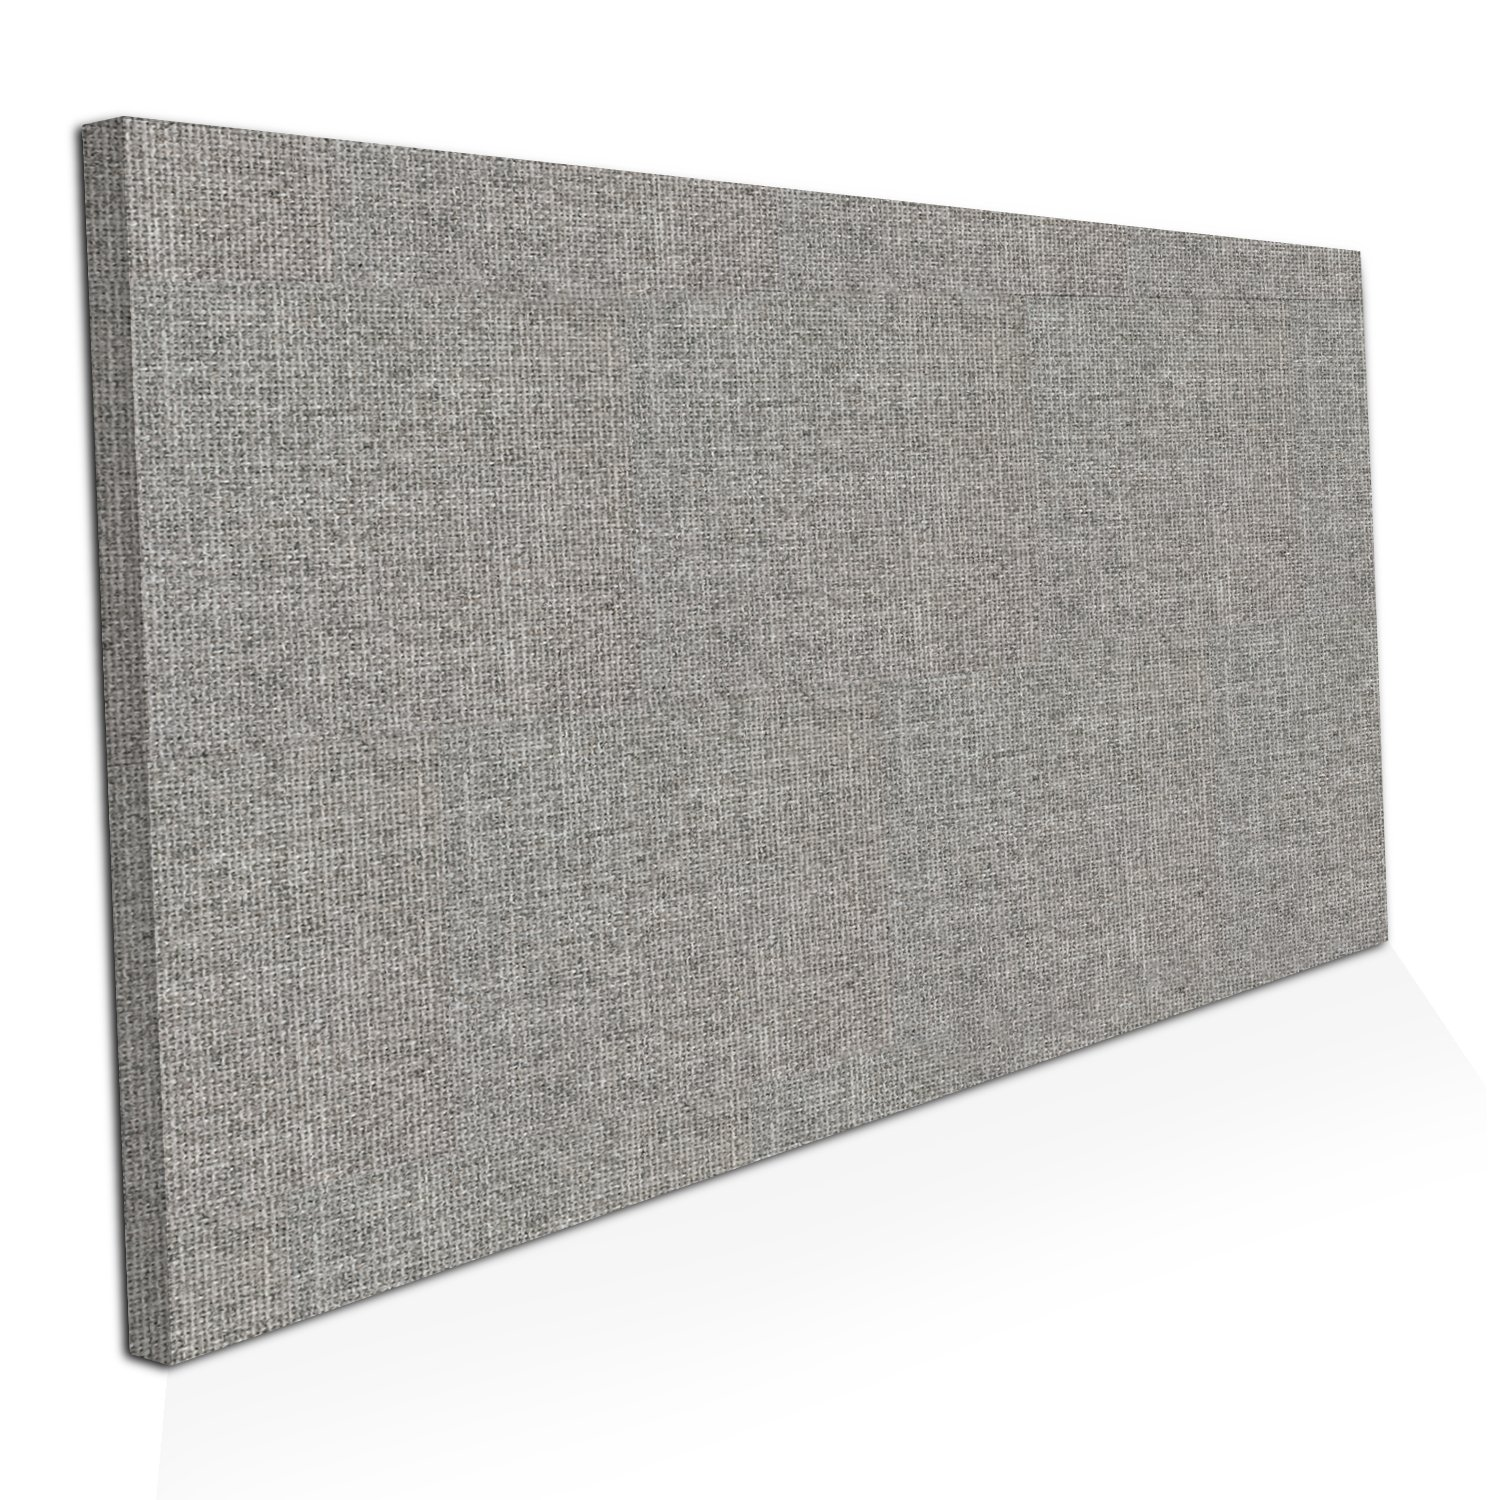 "ADW Acoustic Panels 48"" X 24"" X 2"" Rectangles [2-Pack] Quick Easy DIY Install – See Our Many Colors by Acoustic Design Works (Image #1)"